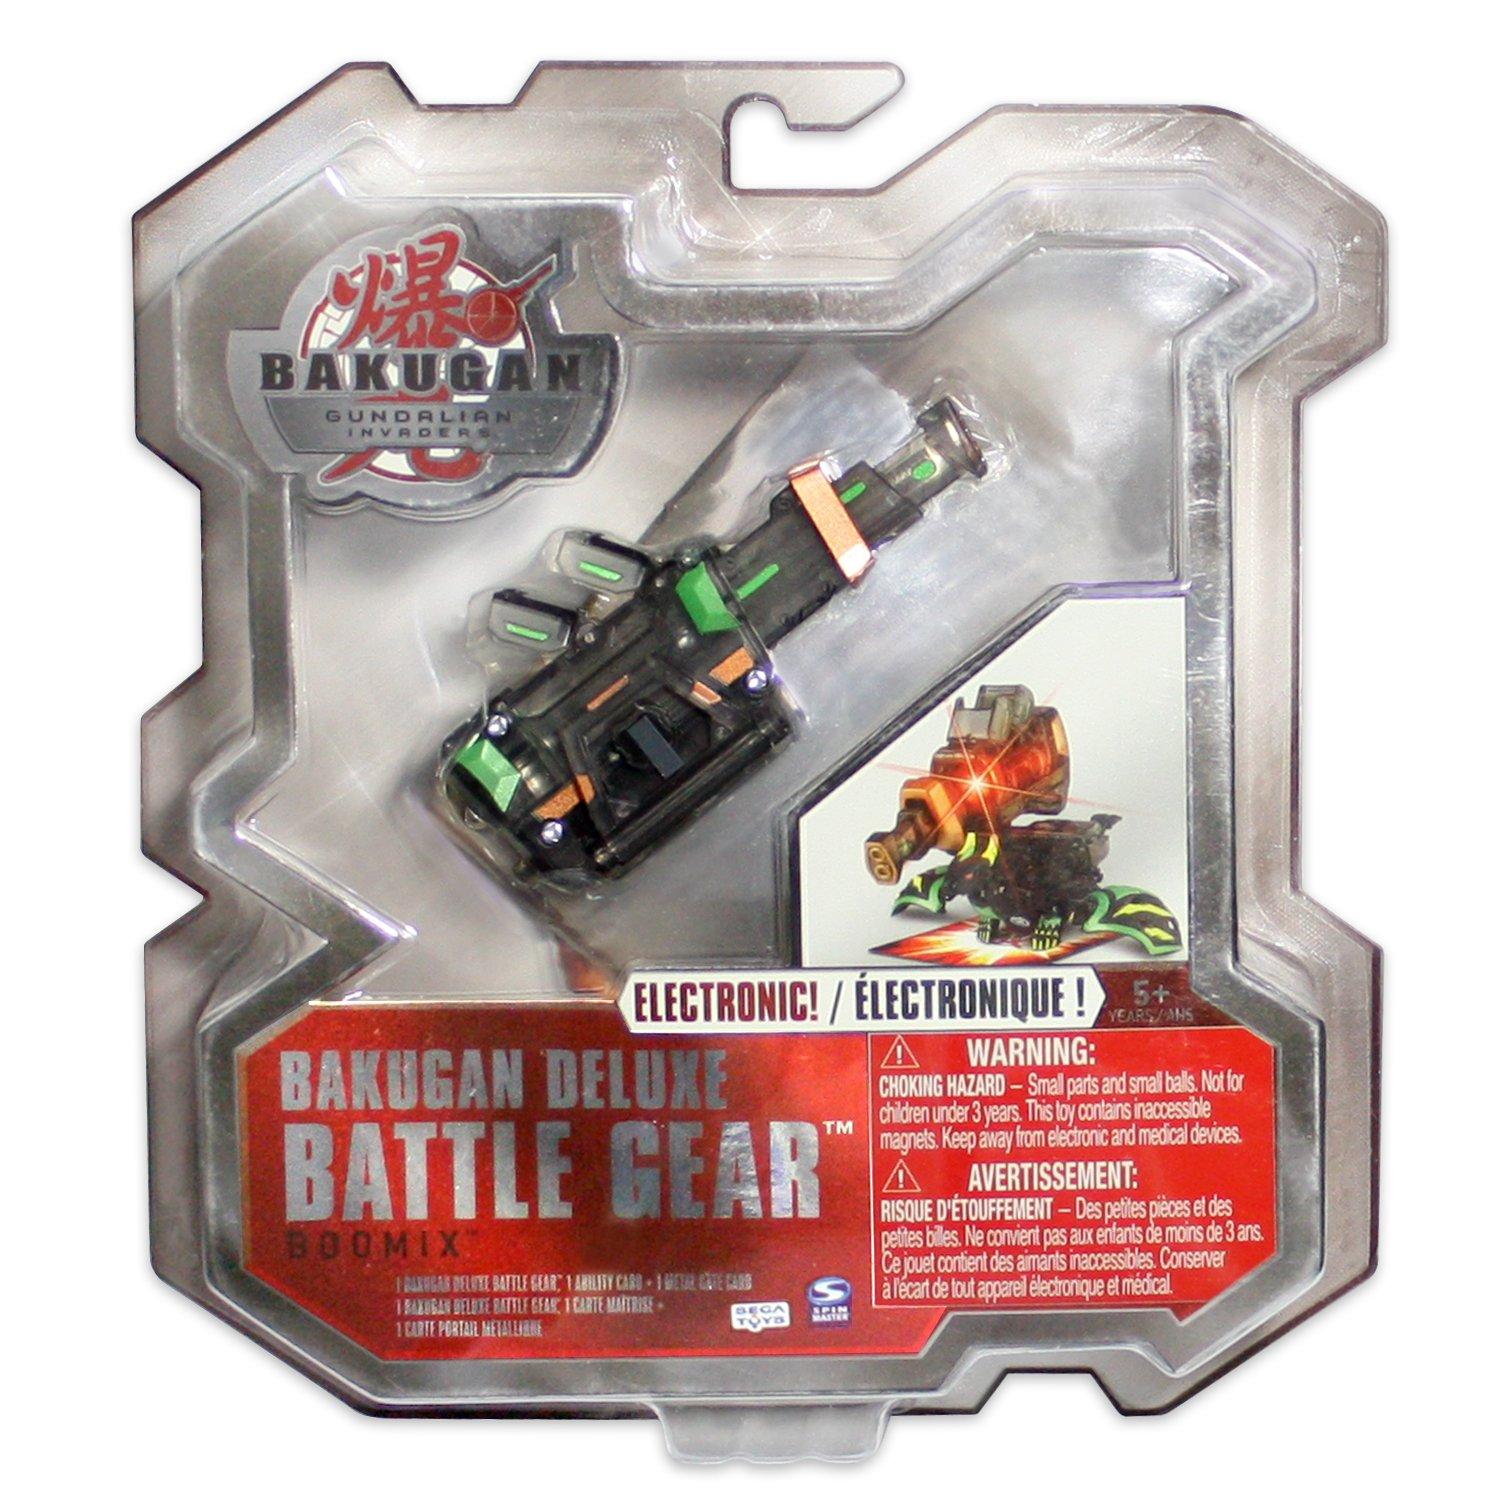 Bakugan Gundalian Invaders Deluxe Battle Gear: BOOMIX (Colours Vary): Amazon.es: Juguetes y juegos